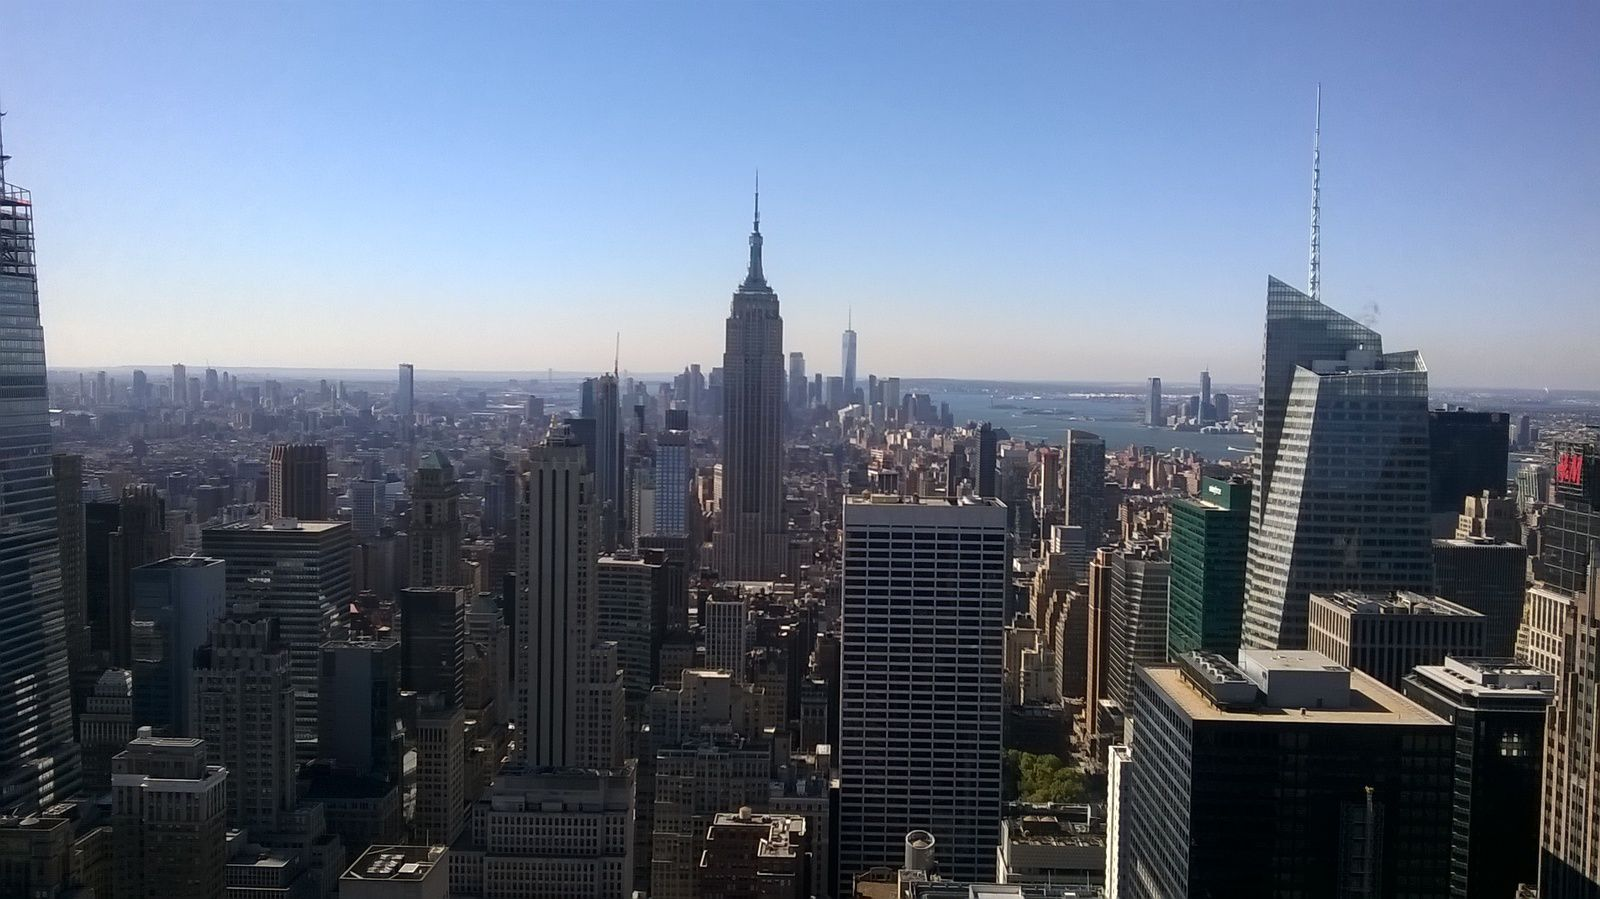 The Top of the Rock.